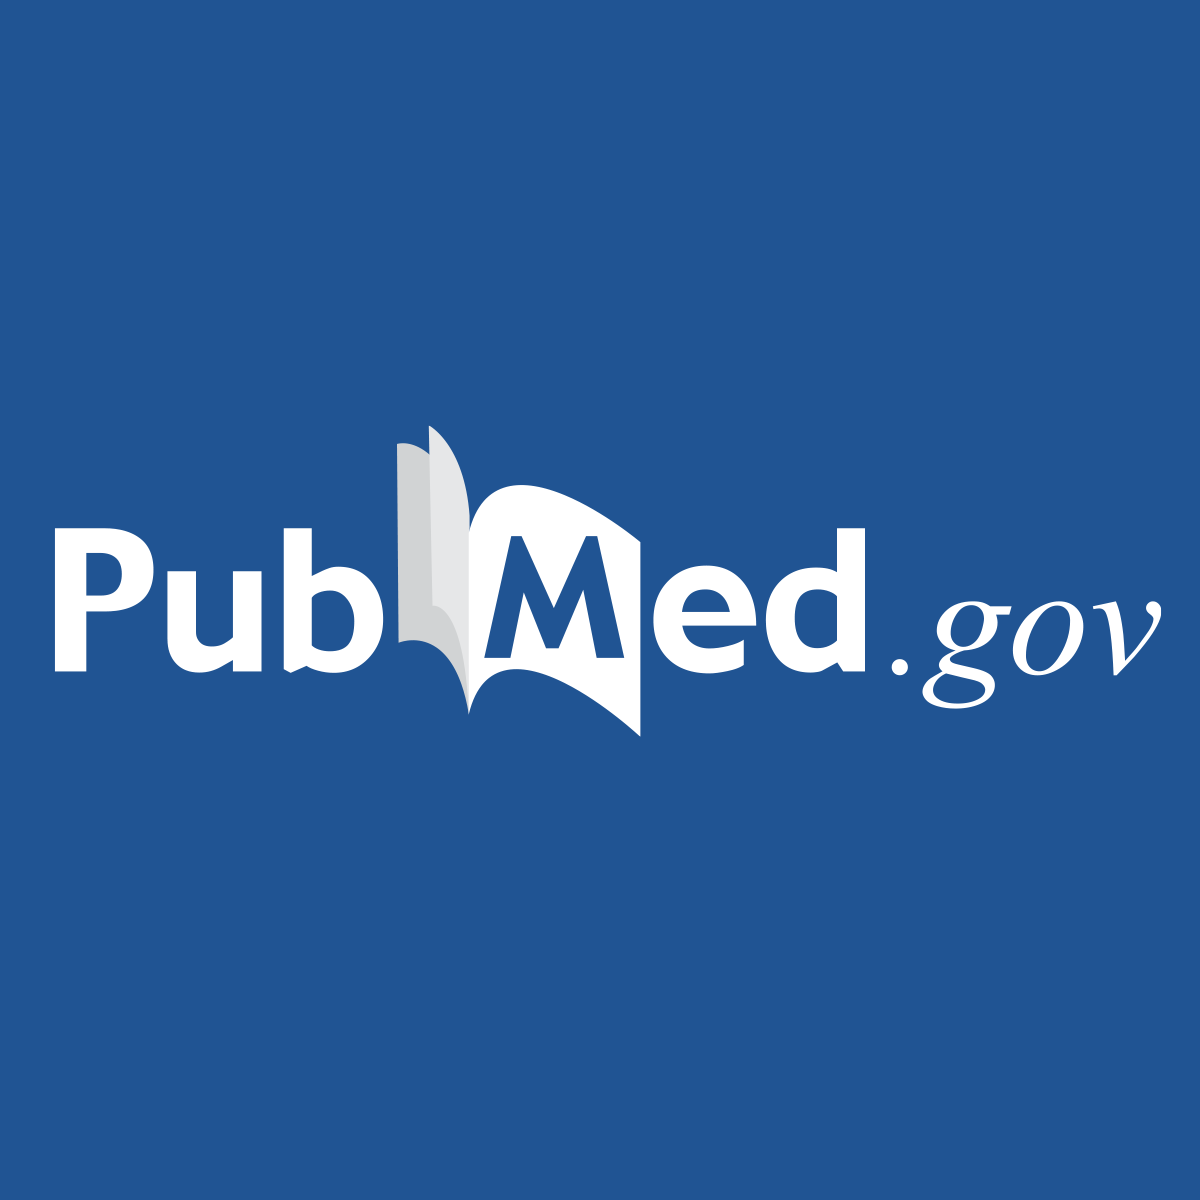 Association of Elevated Blood Pressure Levels With Outcomes in Acute Ischemic Stroke Patients Treated With Intravenous Thrombolysis: A Systematic Review and Meta-Analysis